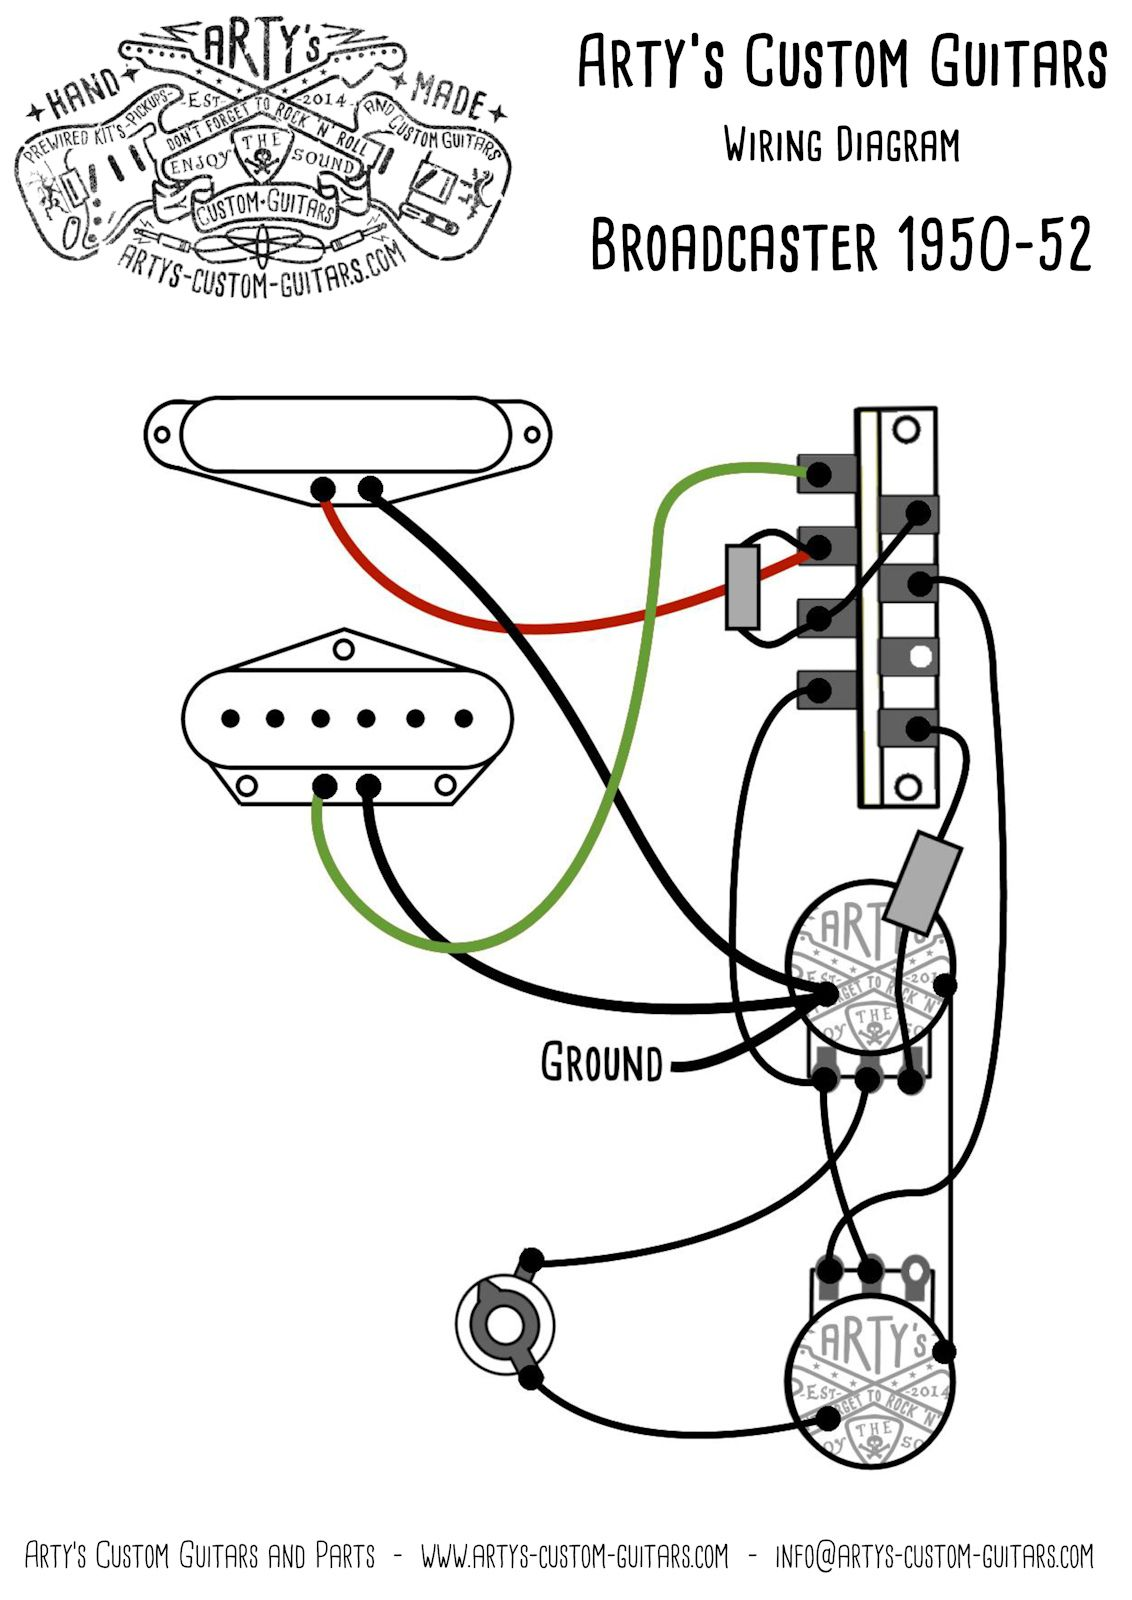 hight resolution of arty s custom guitars broadcaster nocaster 1950 52 vintage pre wired prewired kit wiring assembly harness artys tele telecaster